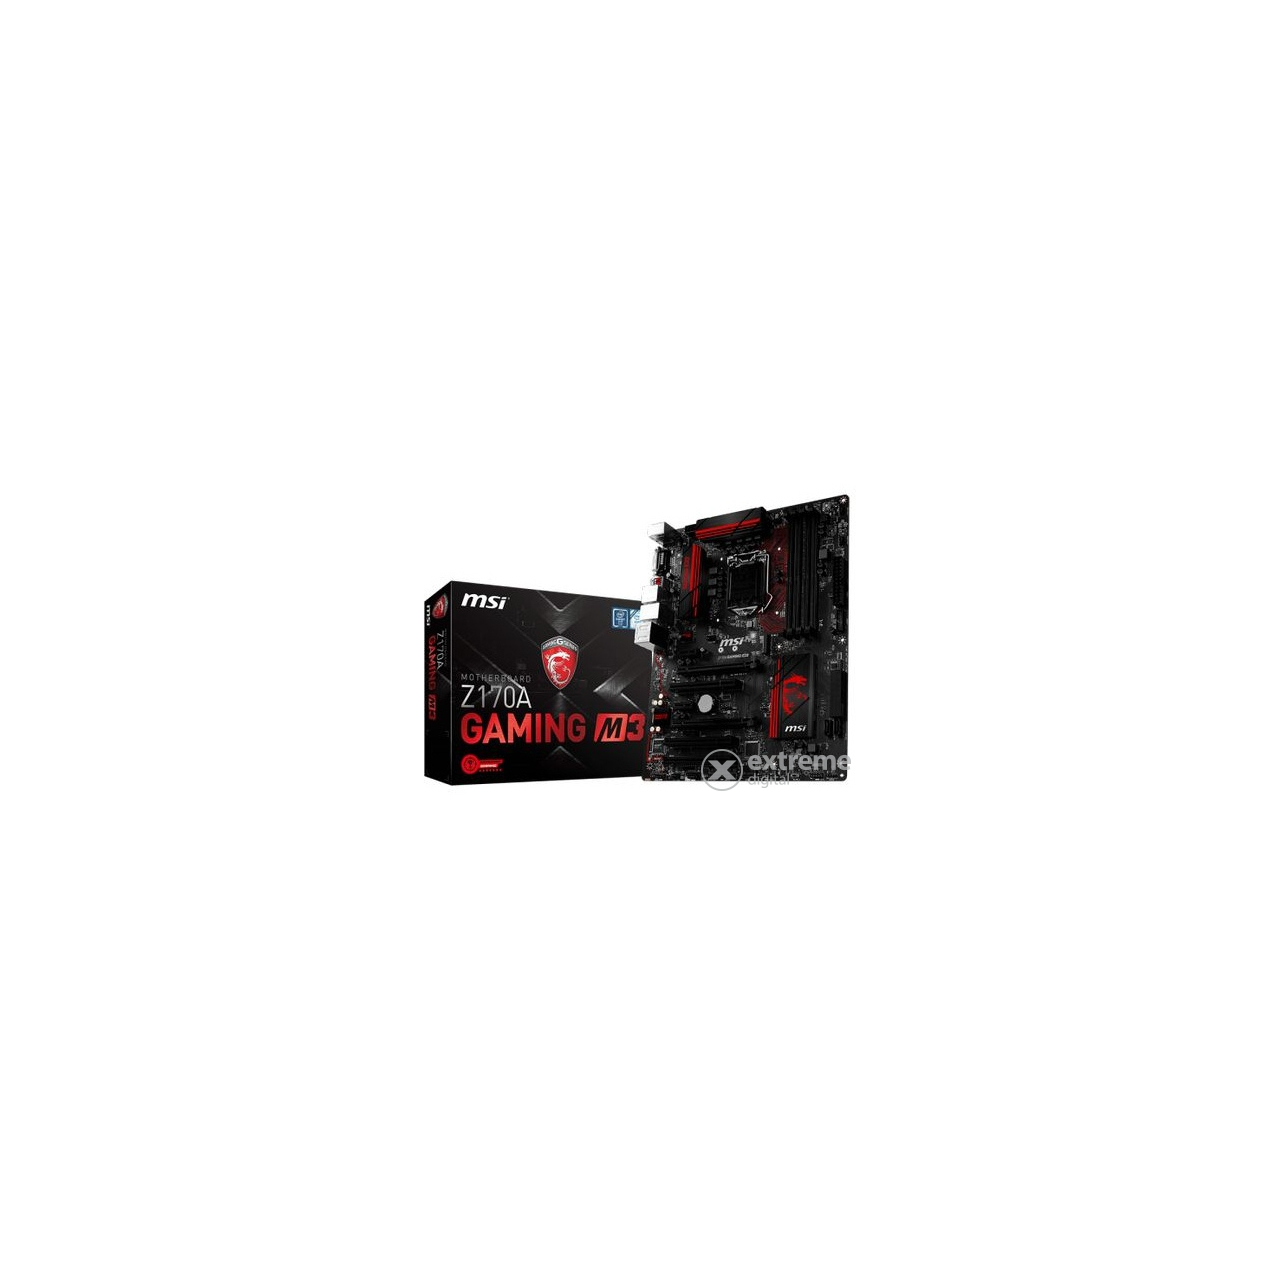 MSI Z170A Gaming M3  S1151 ATX alaplap